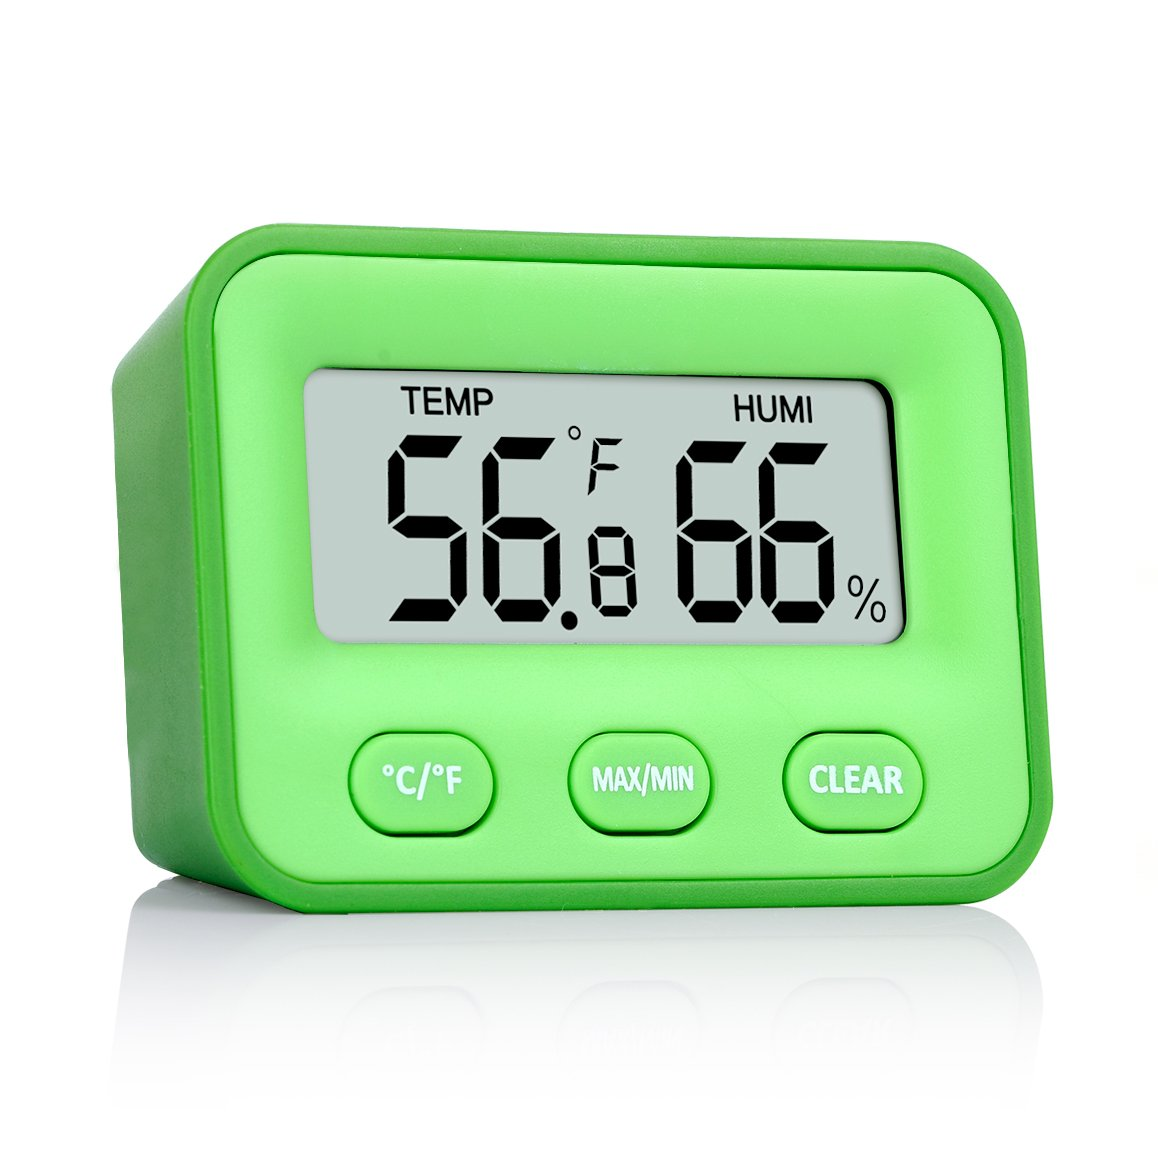 pkman [Newest Design] trade; 2 In 1 Digital Indoor Hygrometer Monitor Humidity,Indoor Room Thermometer Humidity Fahrenheit Or Celsius Temperature Gauge Humidity